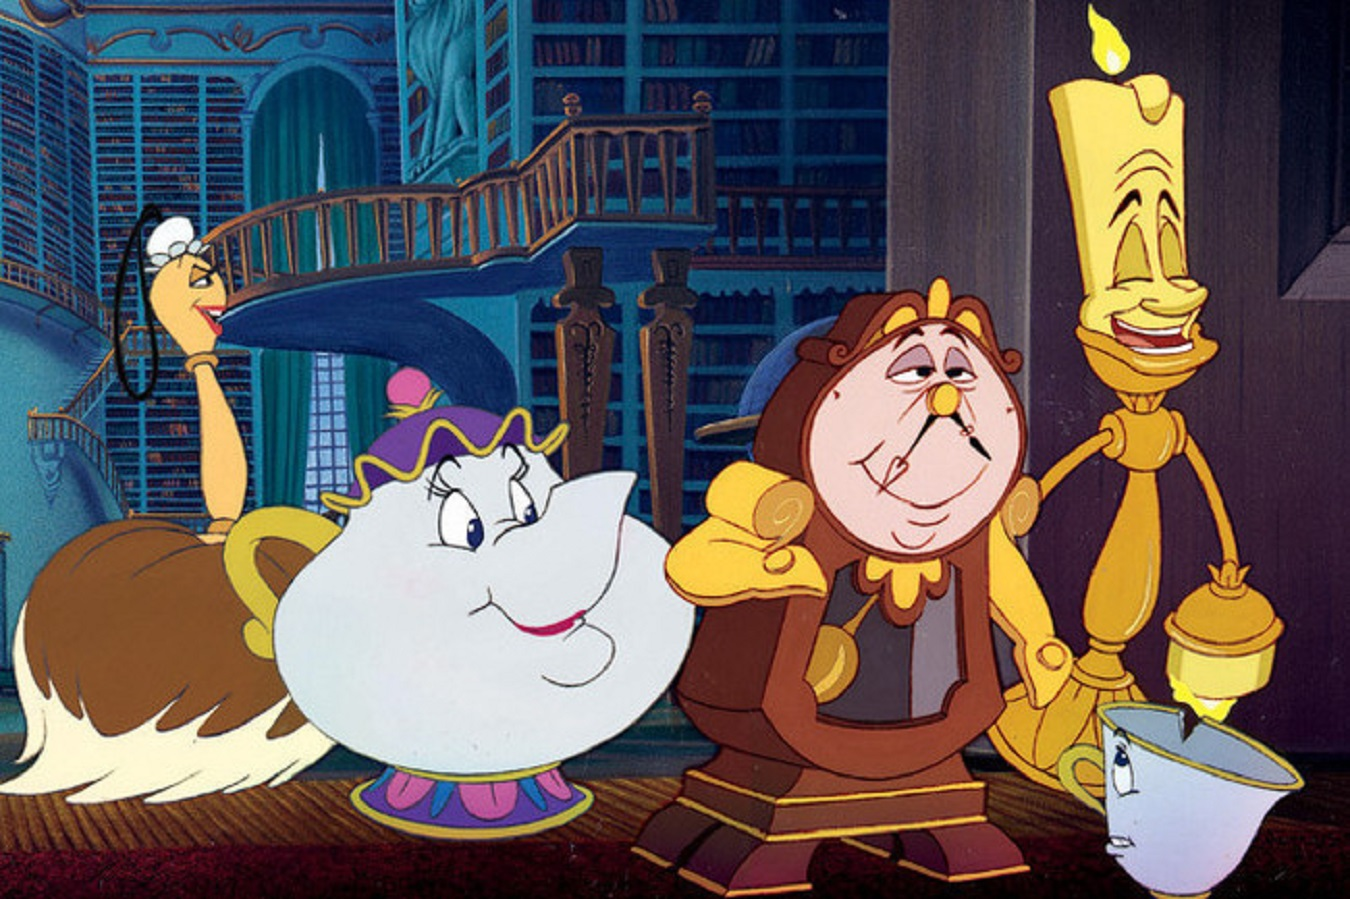 Cartoon characters from Beauty & the Beast